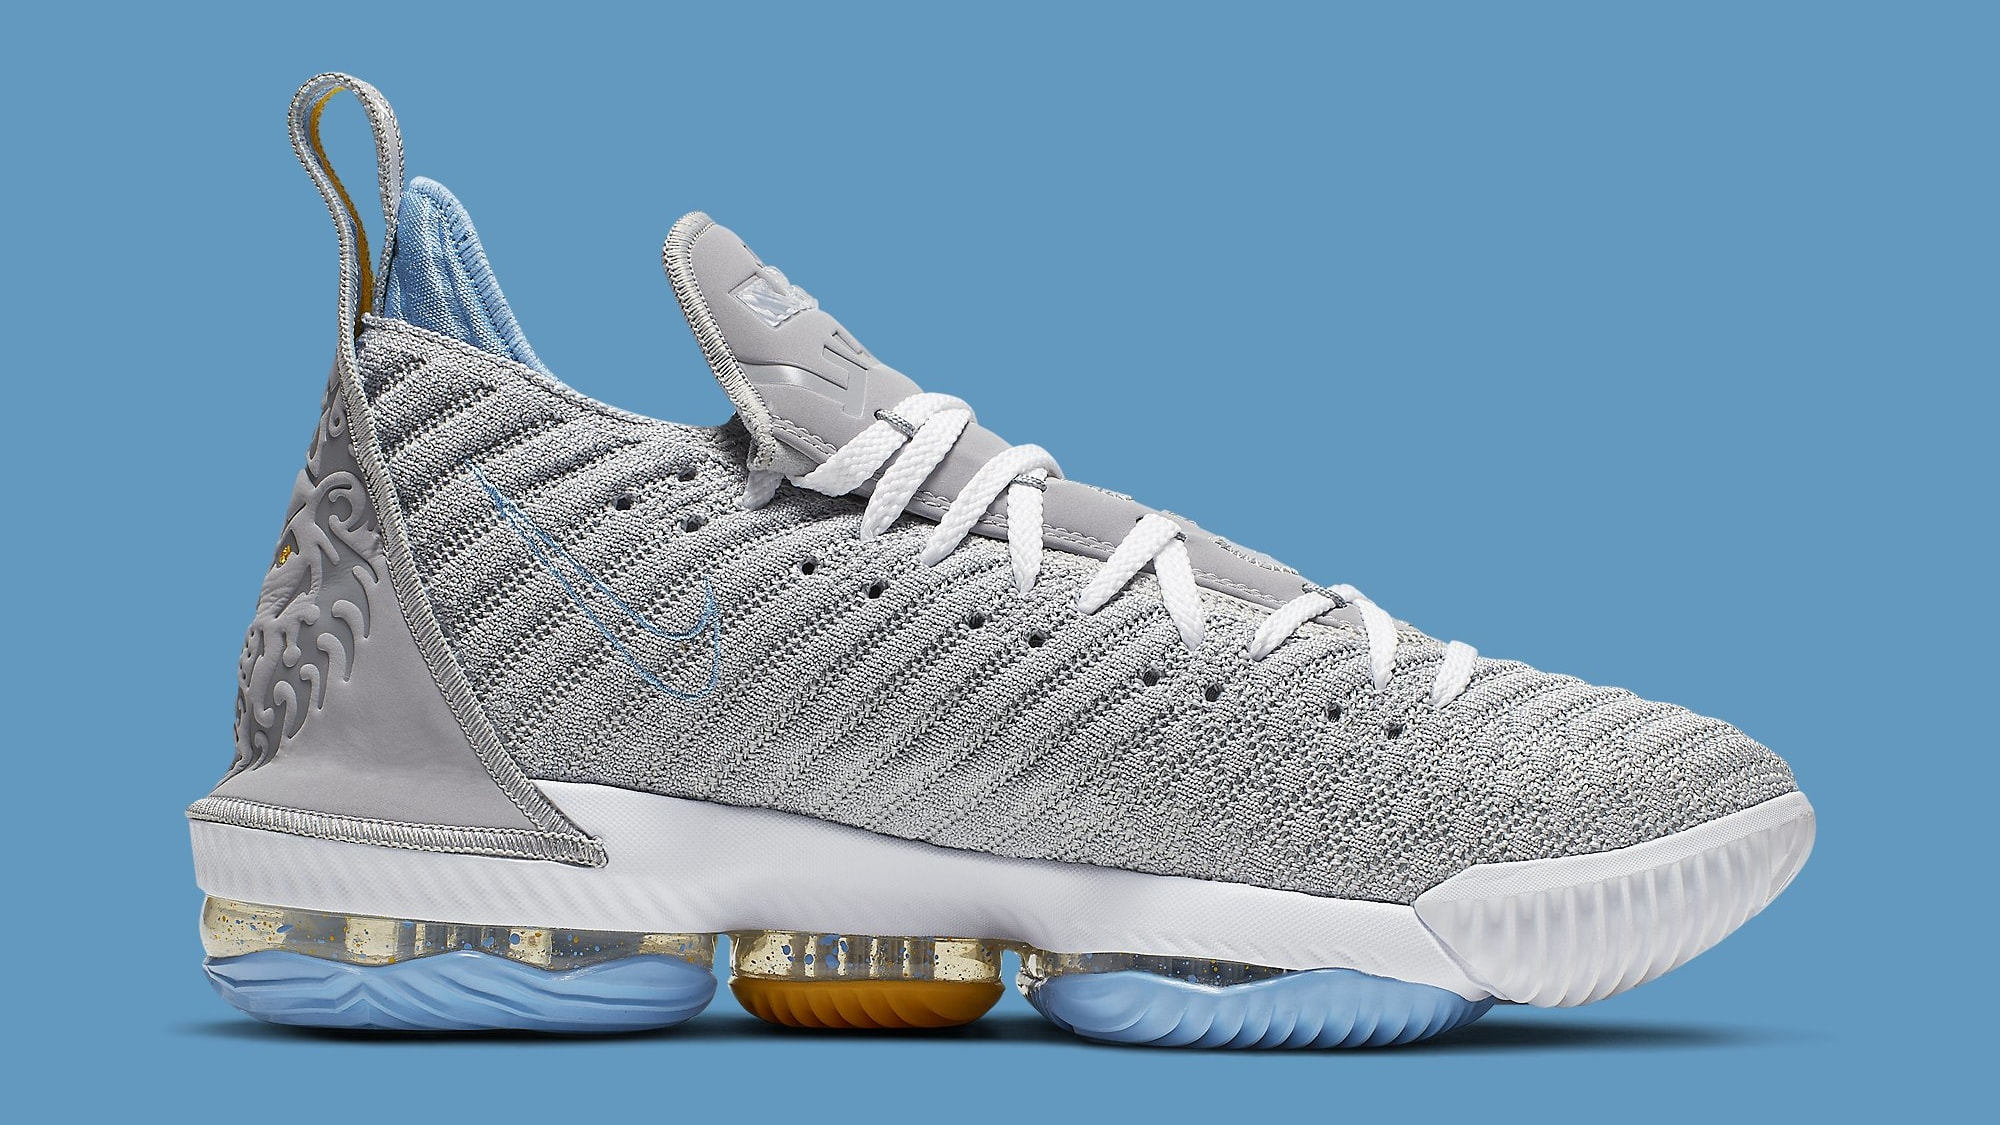 Nike LeBron 16 MPLS Release Date CK4765-001 Medial